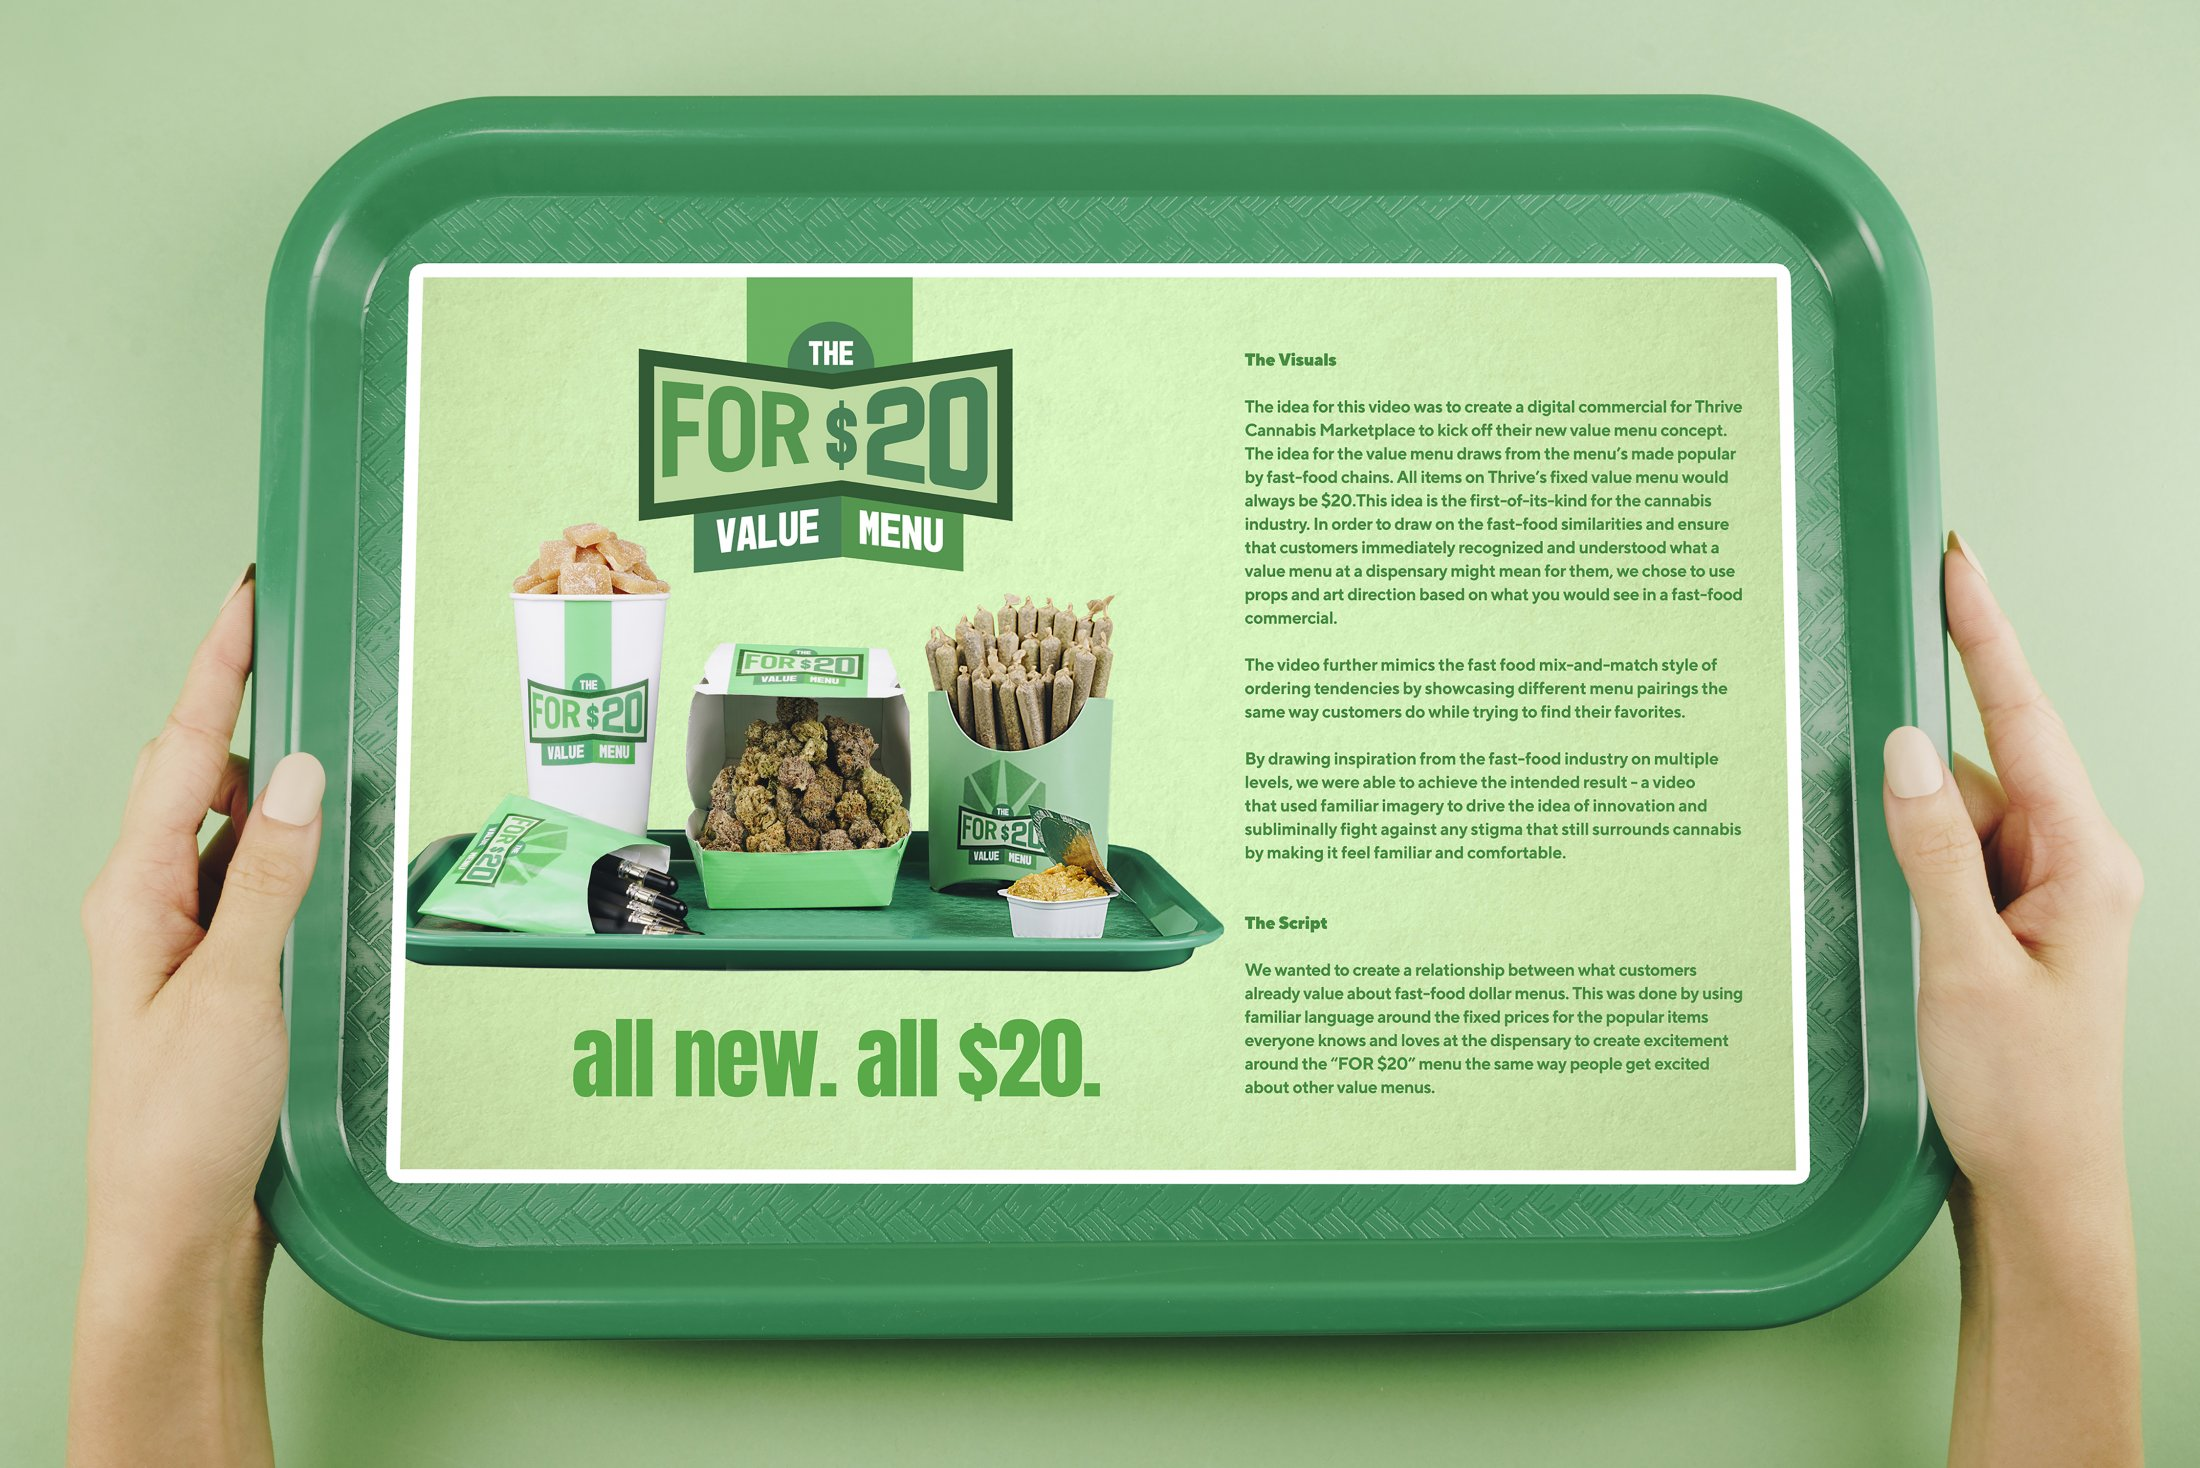 Thrive Cannabis Marketplace: The For $20 Value Menu